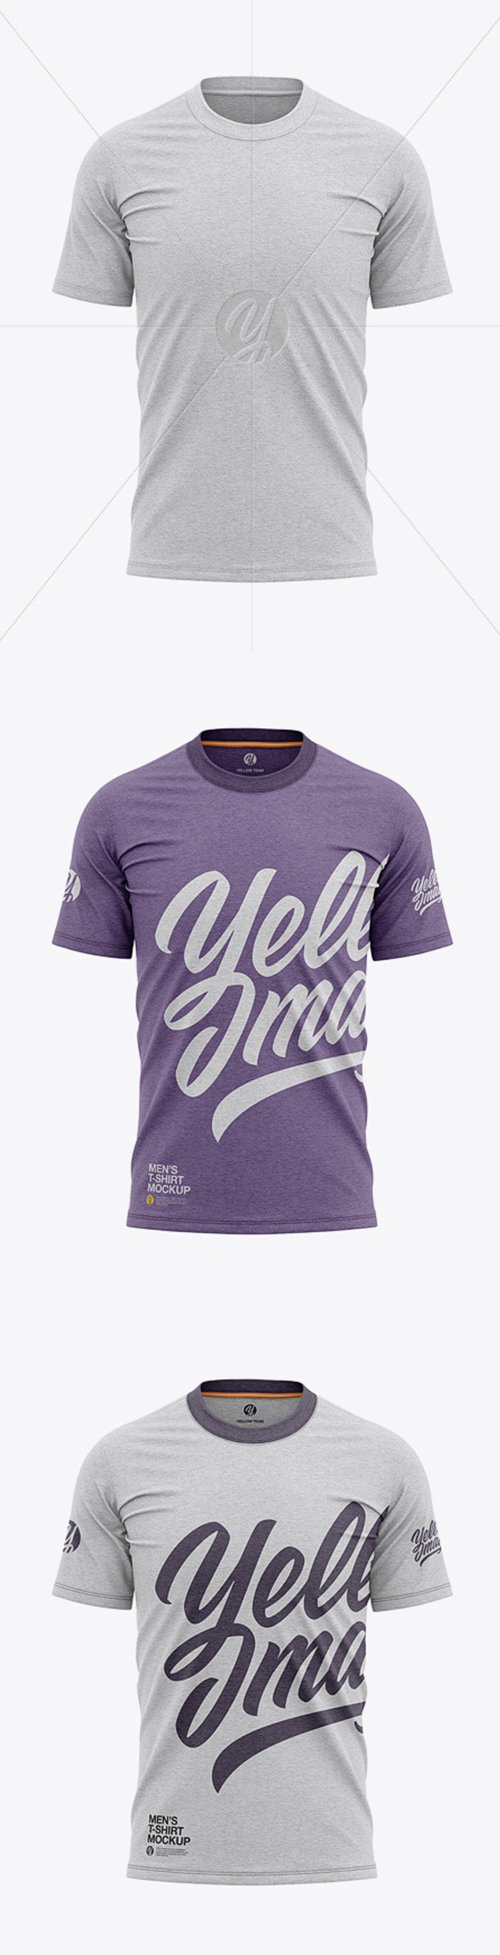 Mens Heather Tight Round Collar T-Shirt - Front View 39217 TIF